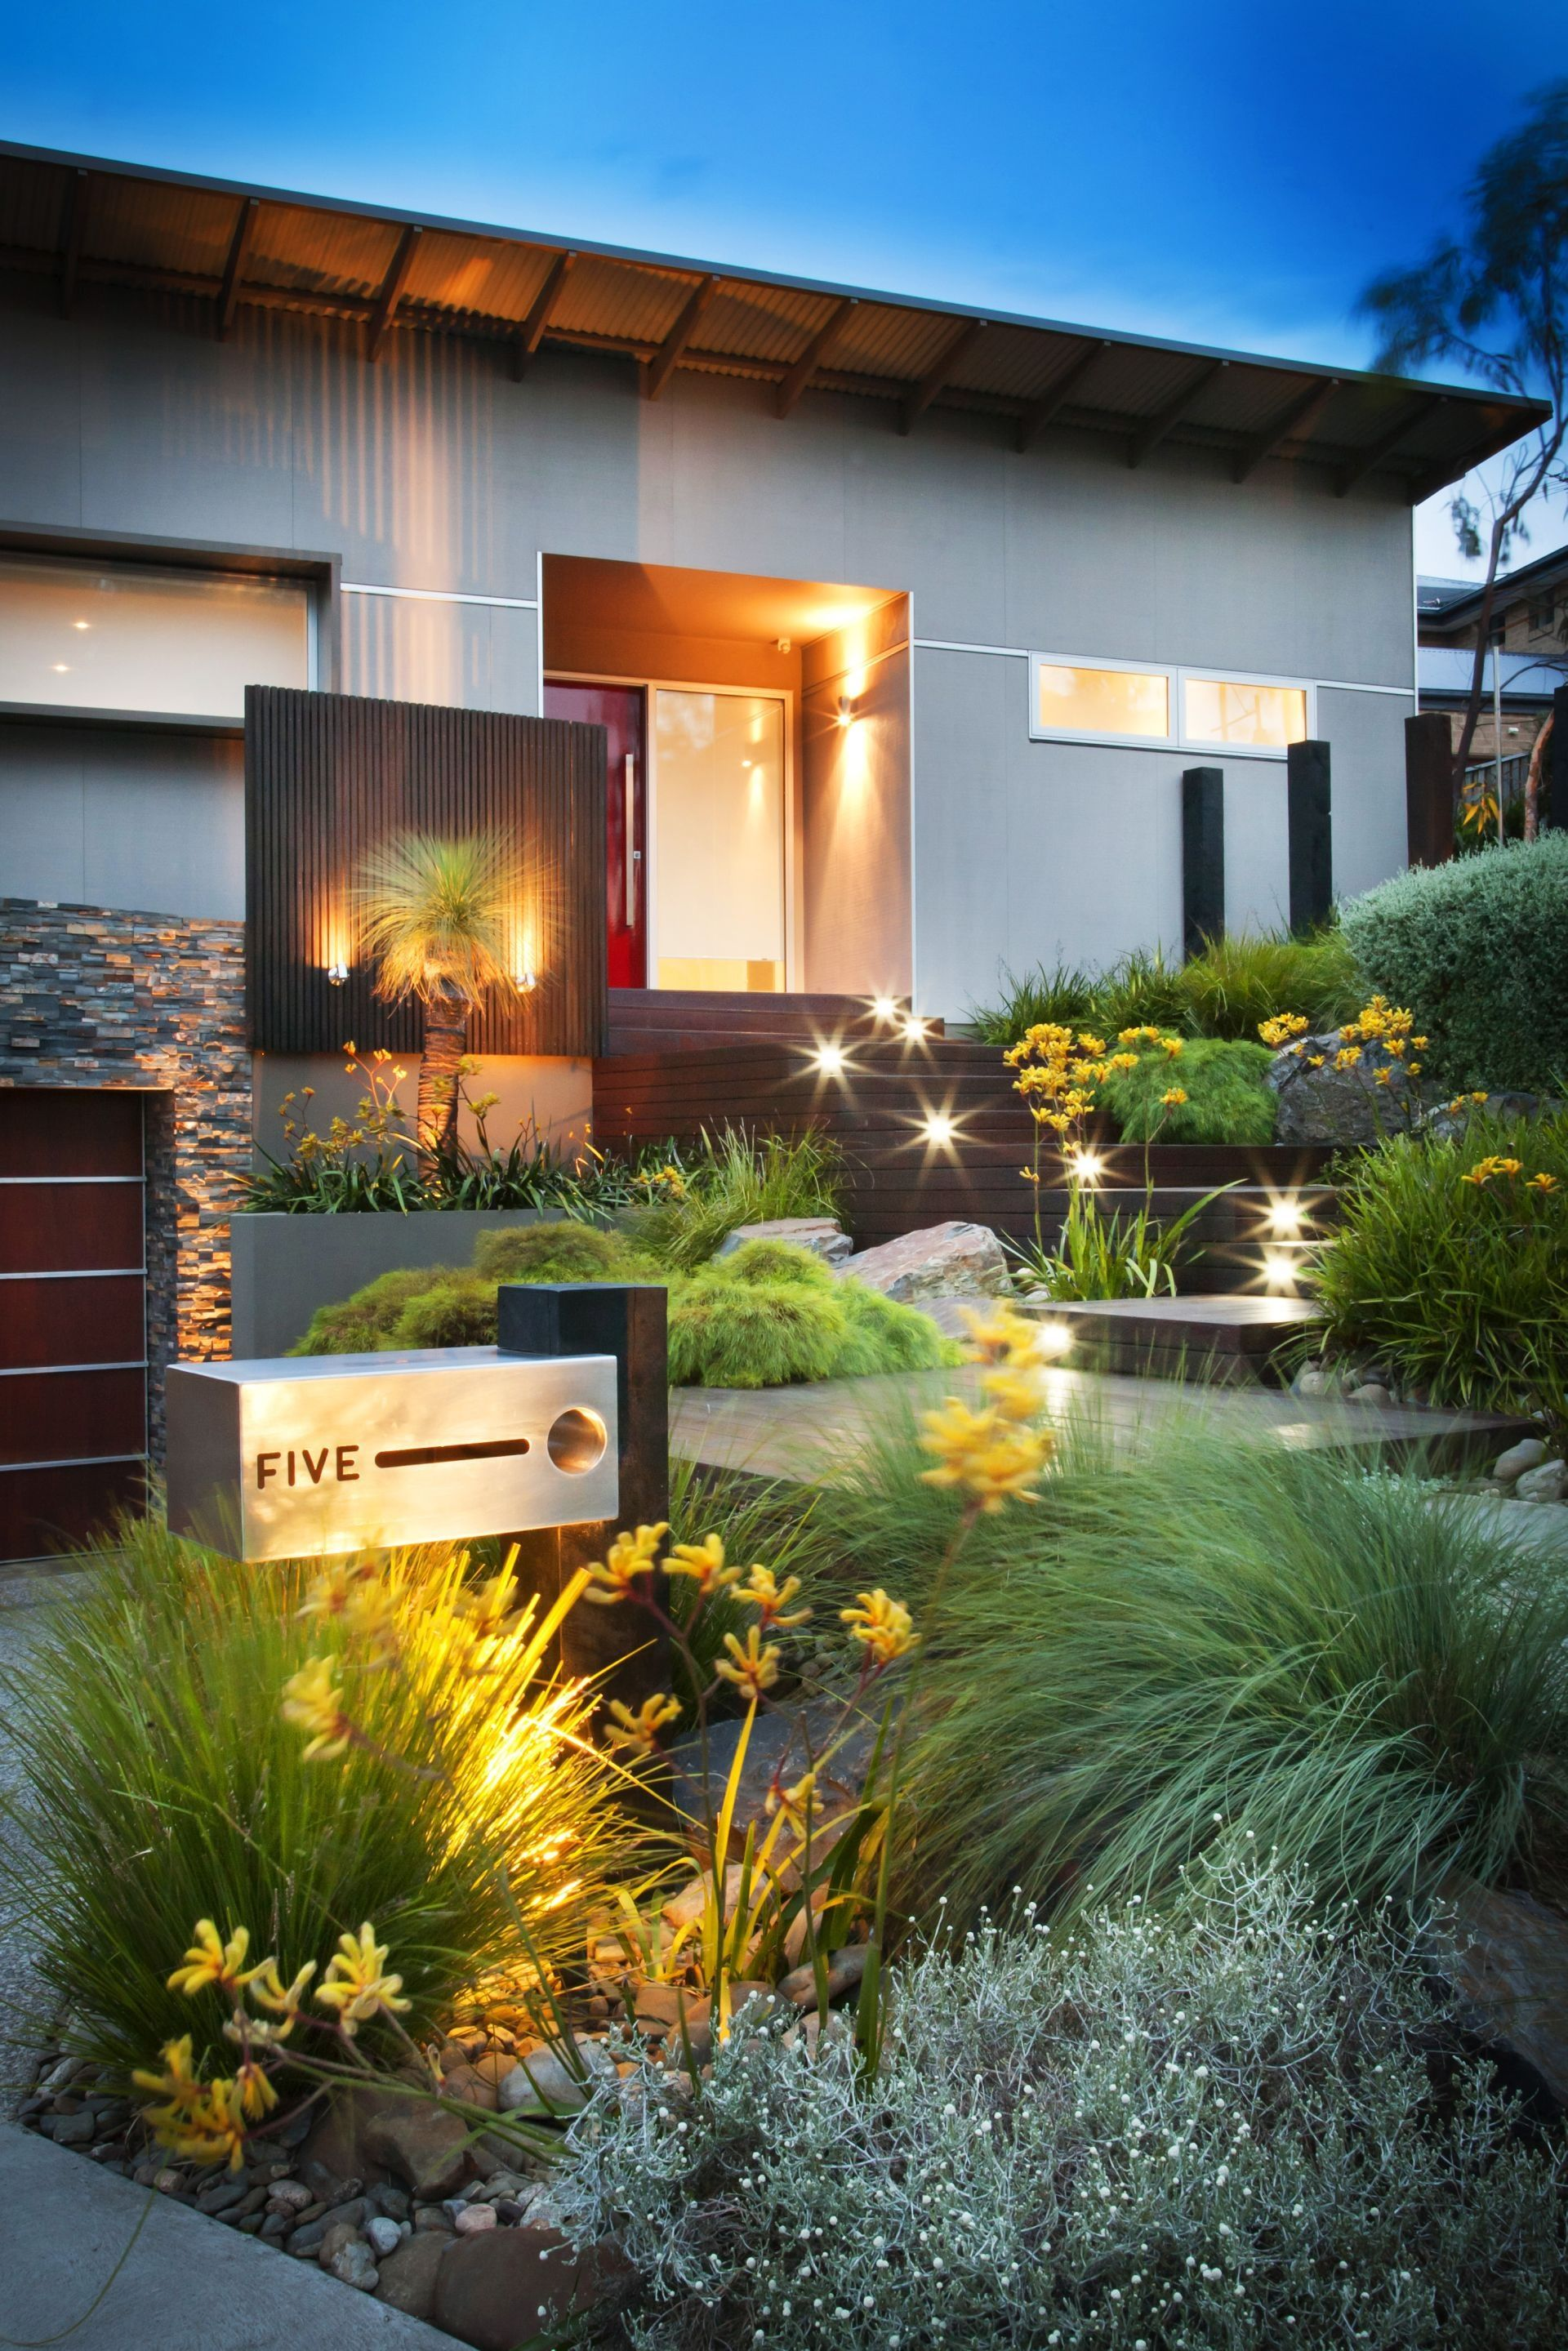 50 Modern Front Yard Designs And Ideas Gardens The Plant And Decks